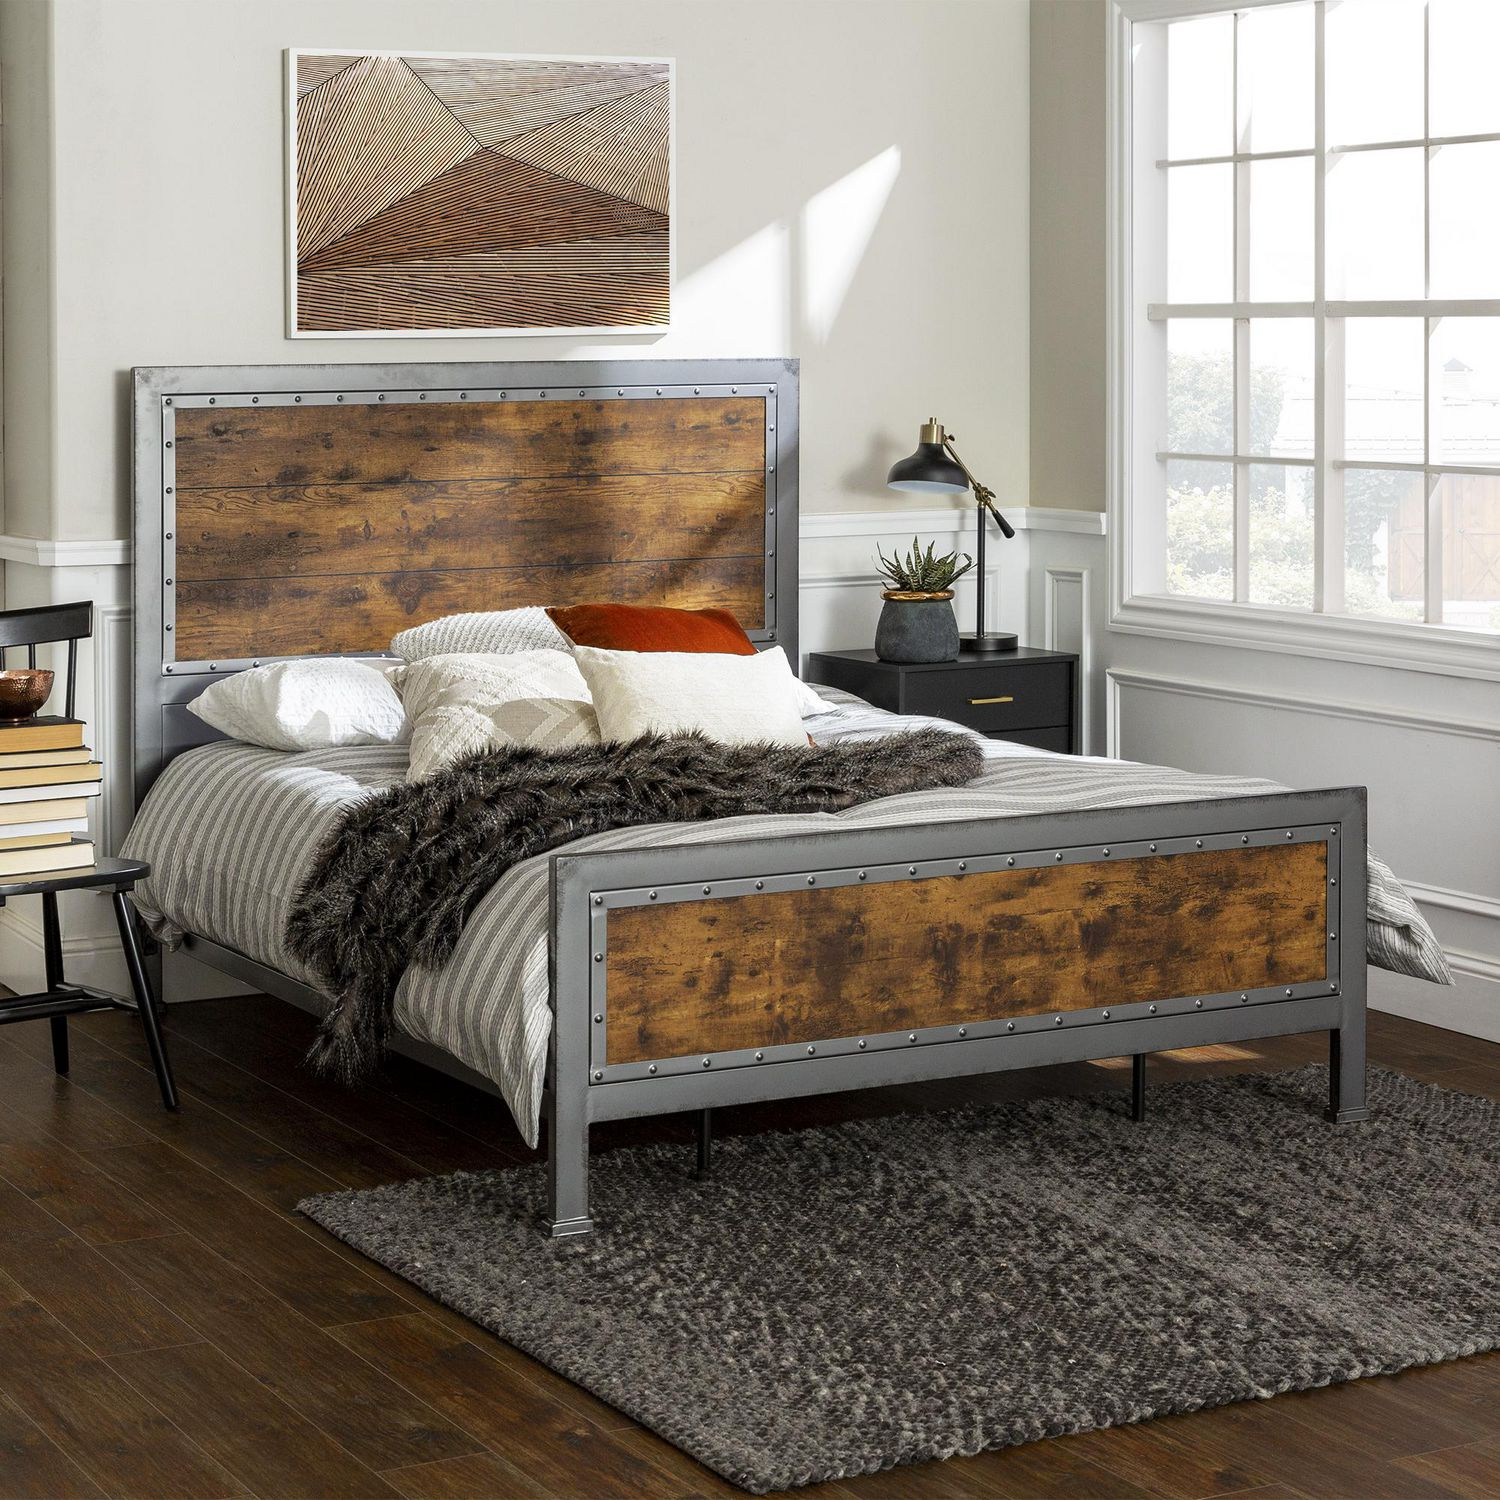 manor park rustic industrial metal queen bed frame and headboard multiple finishes